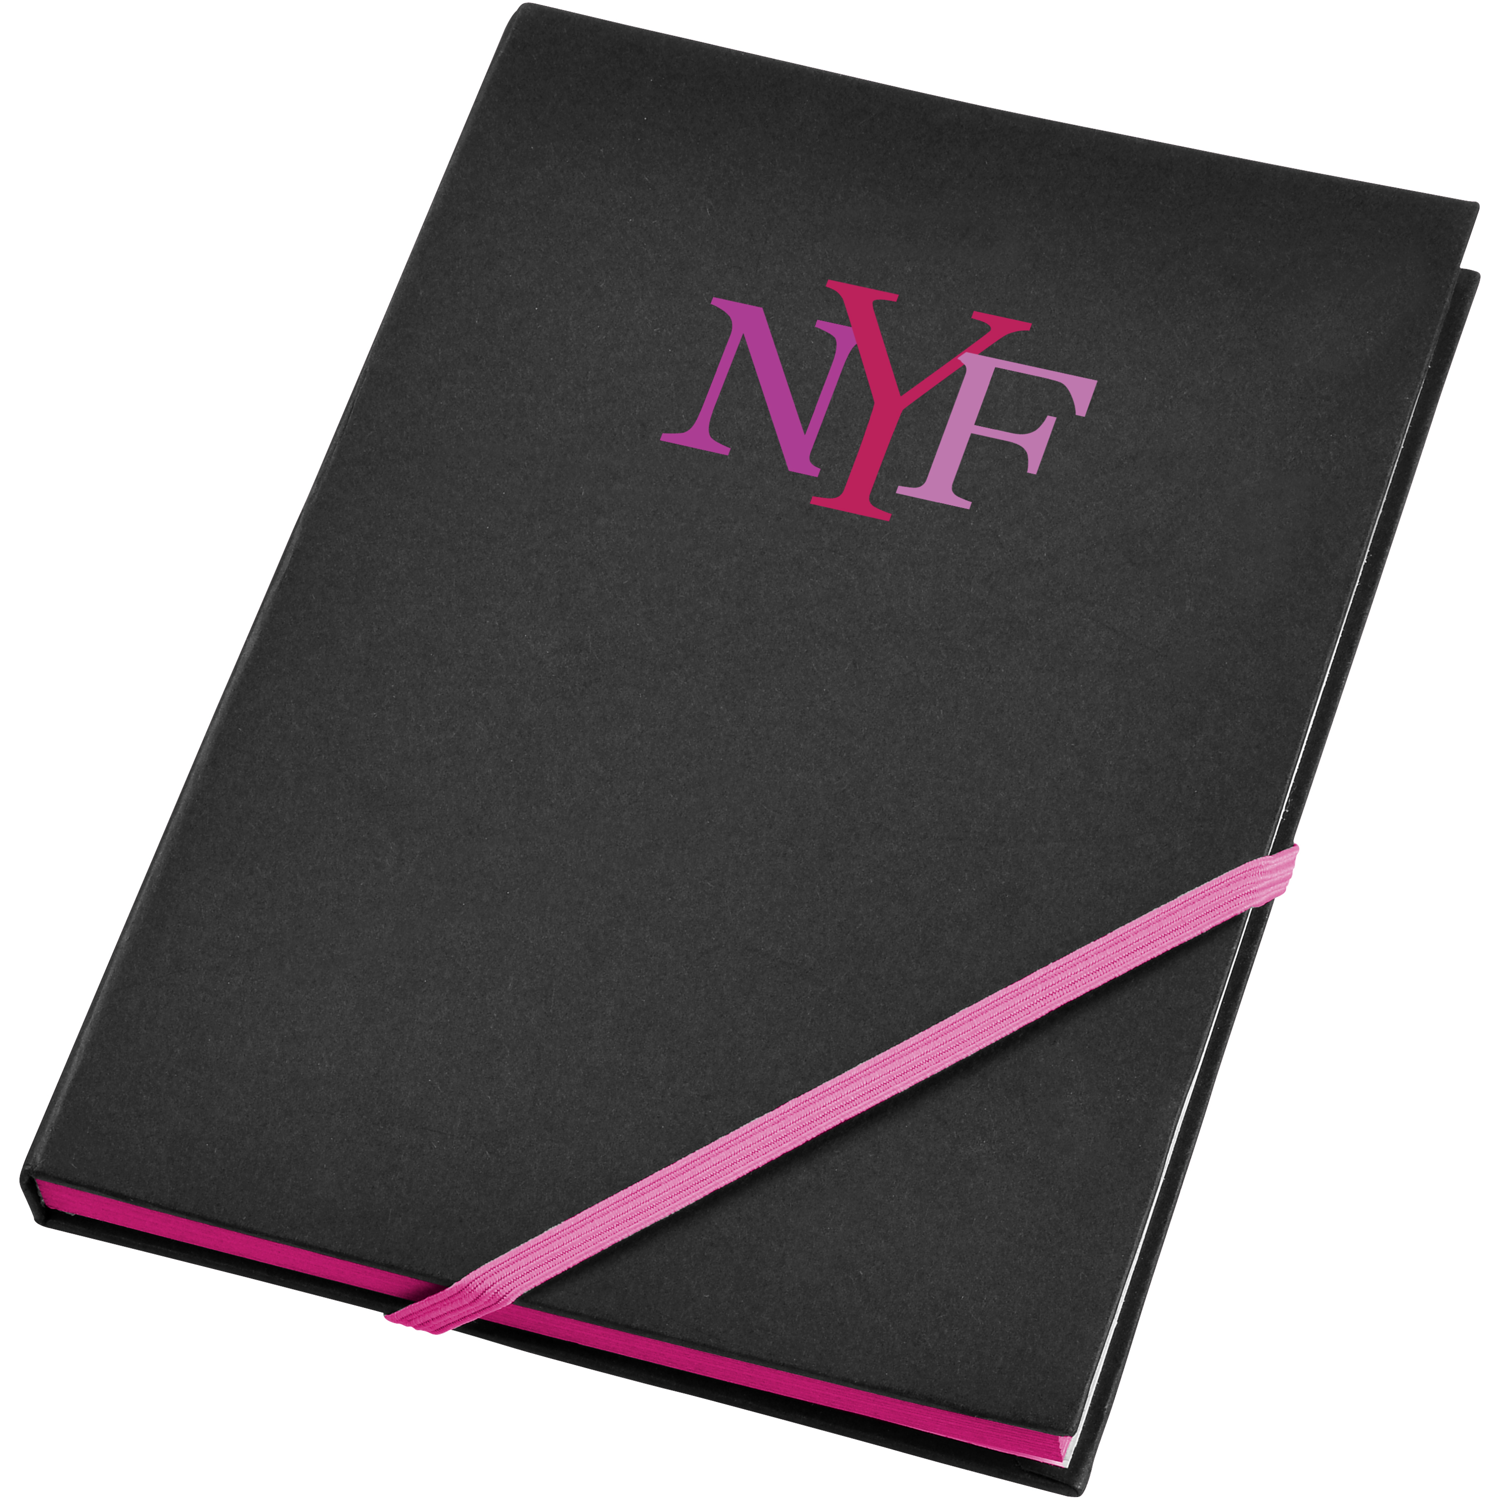 A5 Travers Hard cover notebook